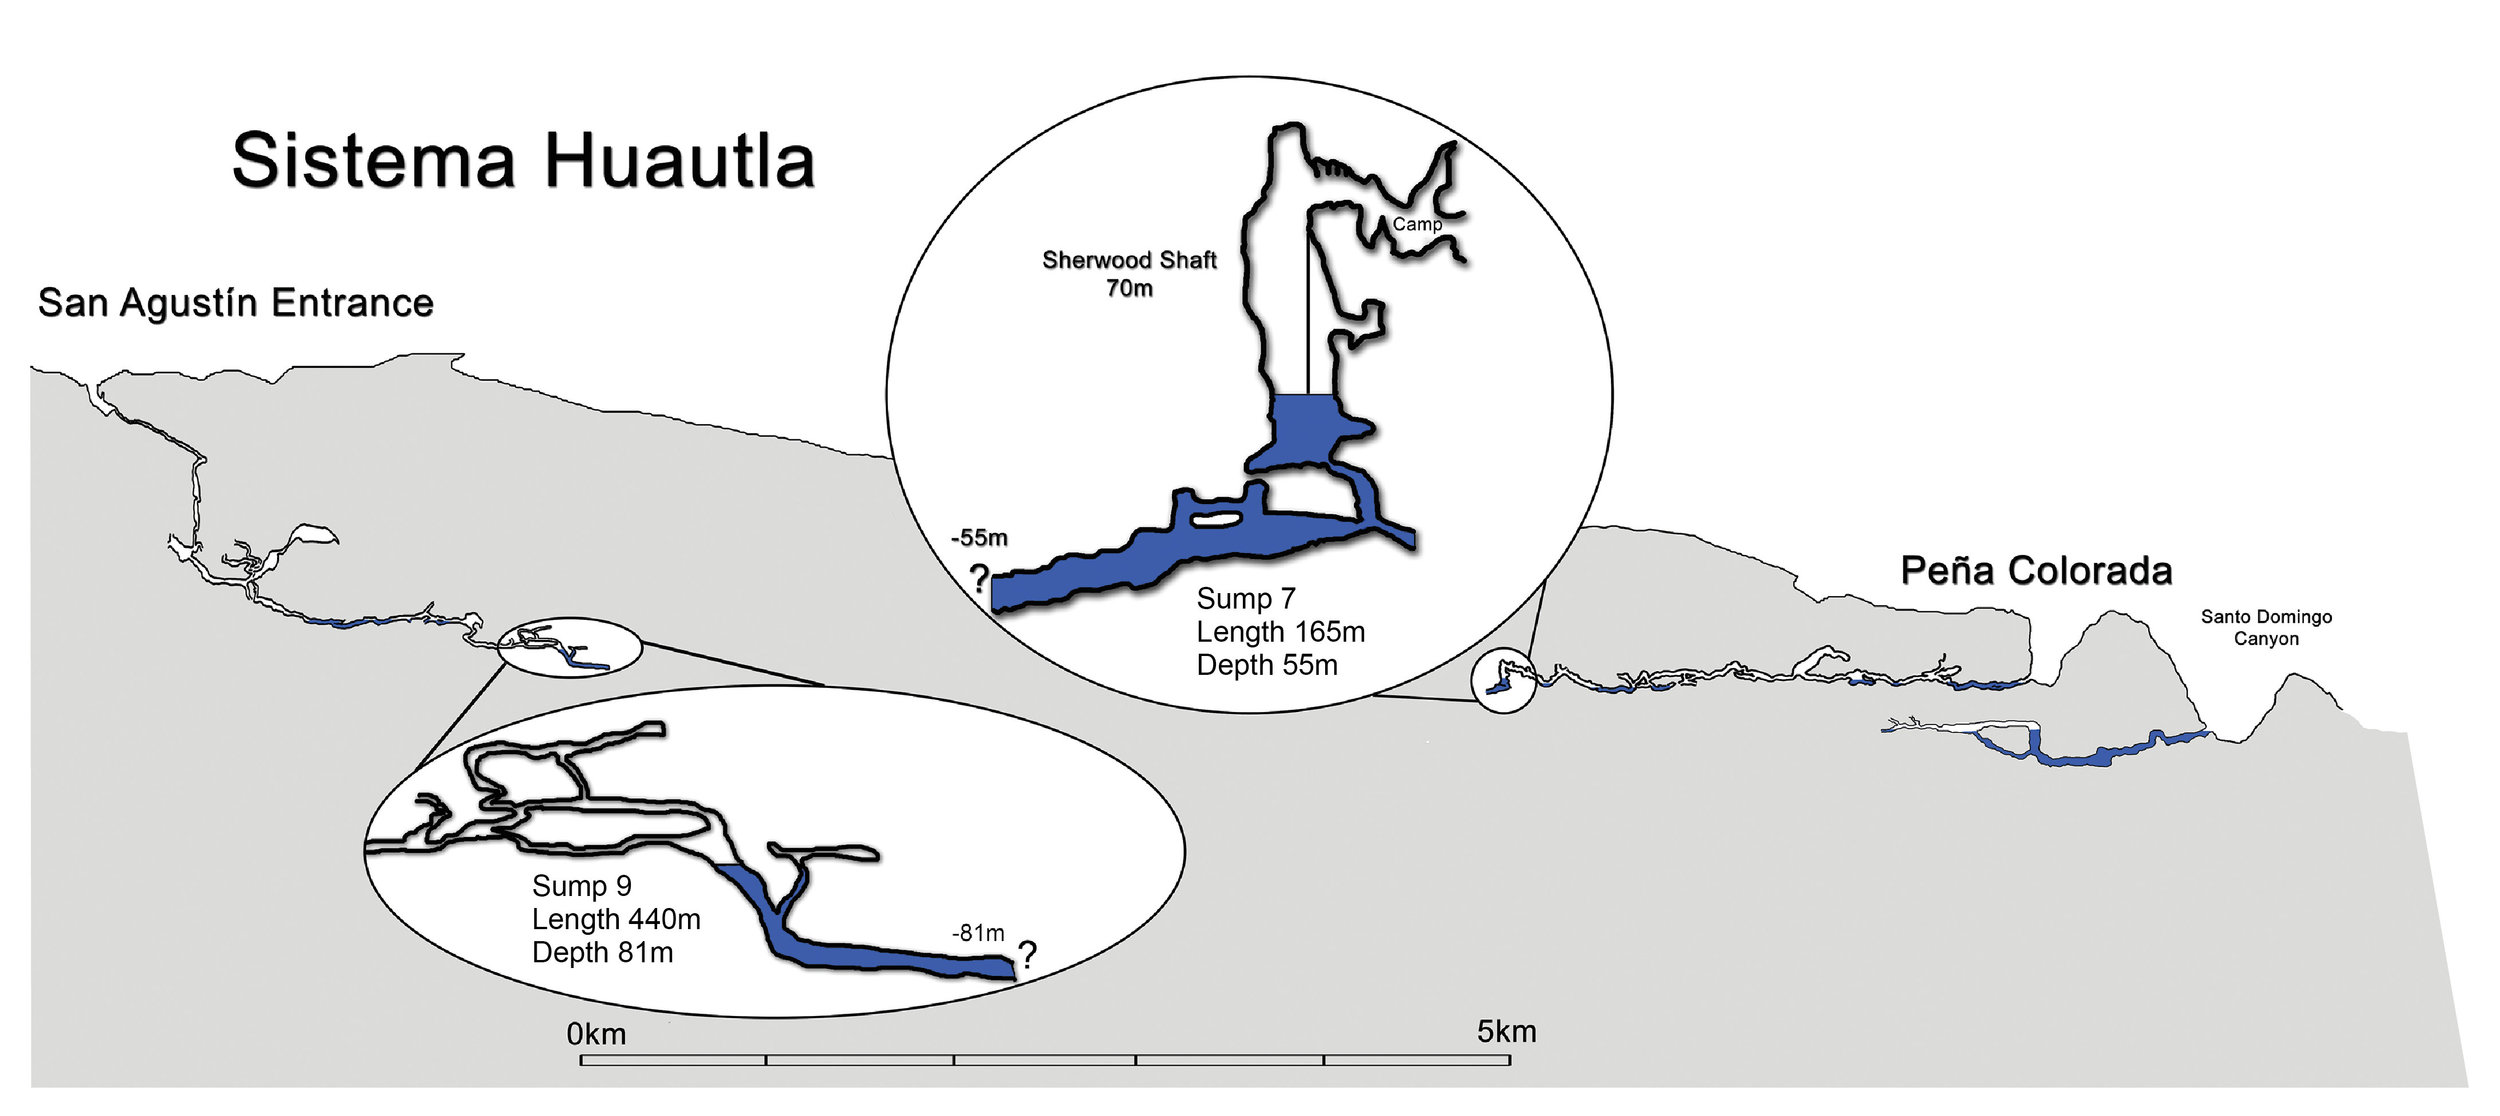 A schematic of Sistema Huautla (on the left) relative to its resurgence (on the far right) and the Pena Colorada, it's hypothesised fossil overflow resurgence. Only the most convenient/quickest route to Sump 9 is shown.